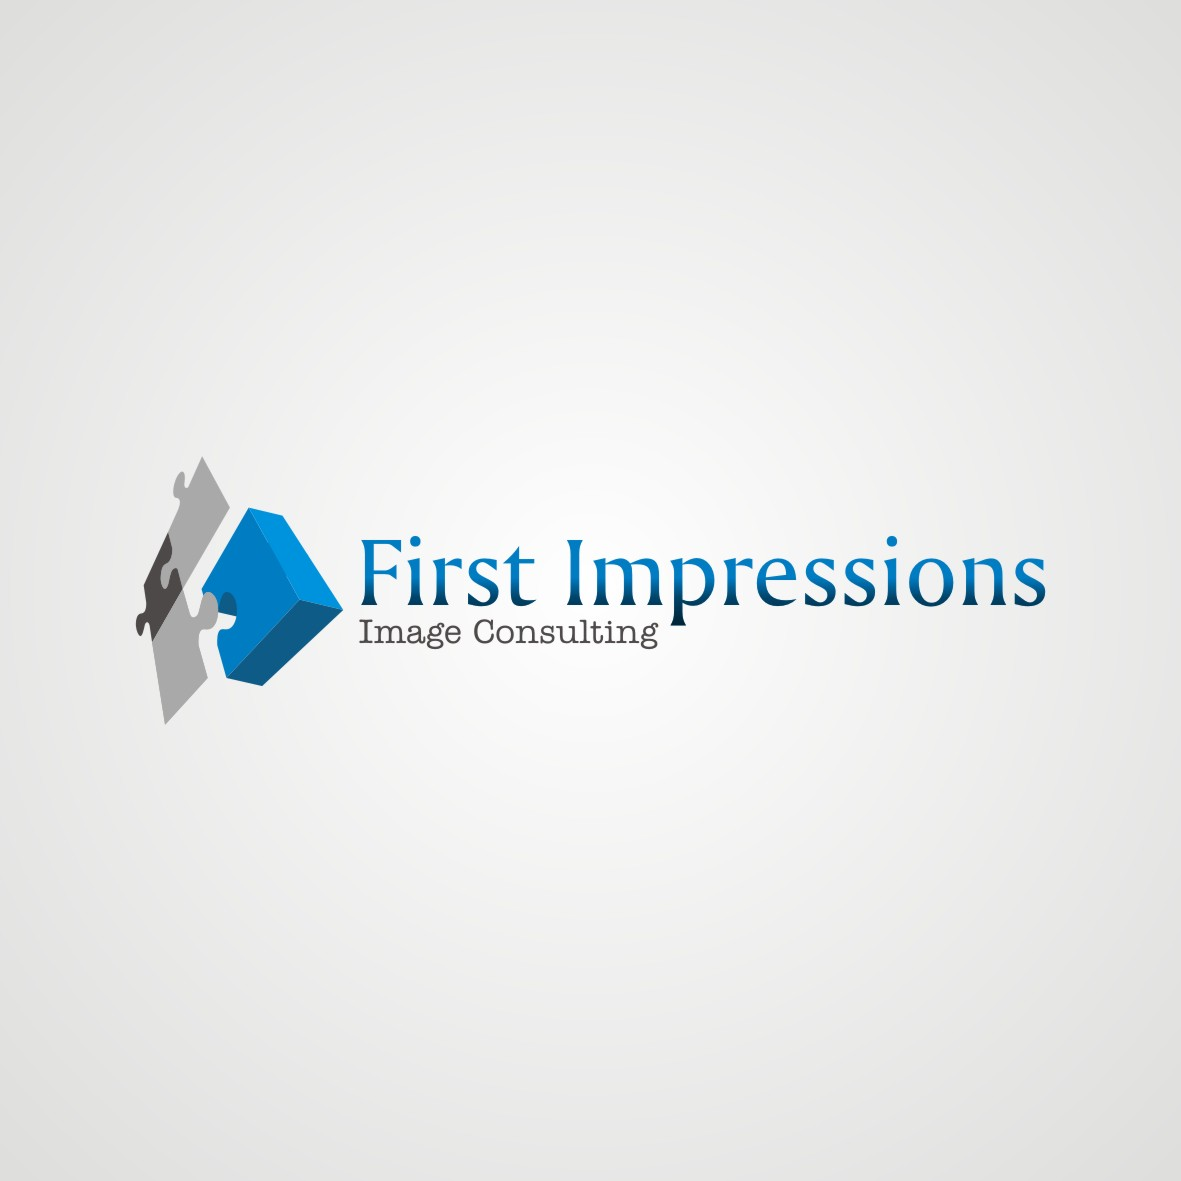 Logo Design by arteo_design - Entry No. 49 in the Logo Design Contest First Impressions Image Consulting Logo Design.